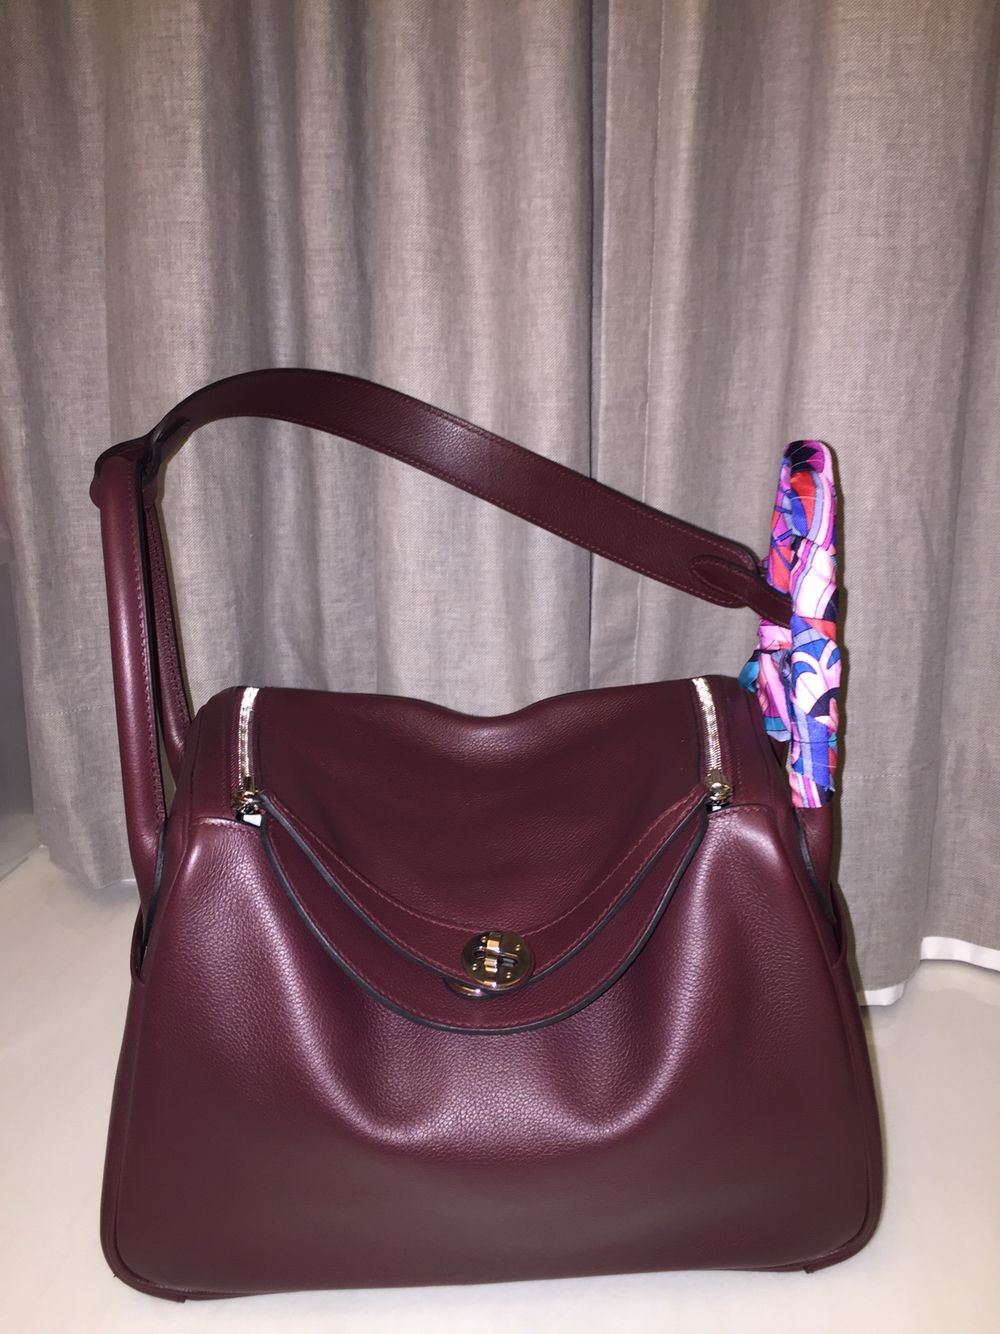 1a6f47b8ae0b Hermes Lindy 30 Prune Evercolor Leather